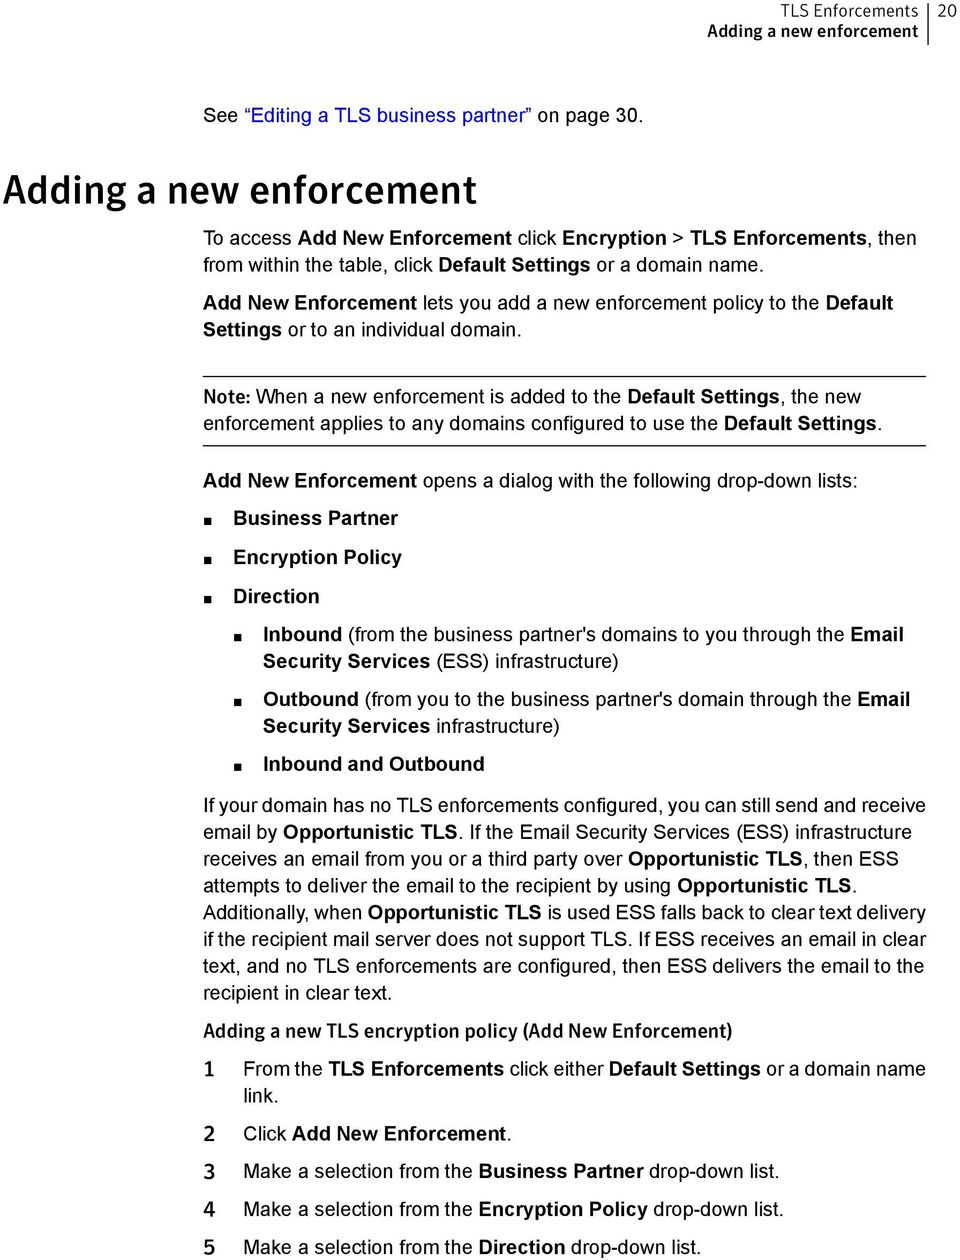 Add New Enforcement lets you add a new enforcement policy to the Default Settings or to an individual domain.